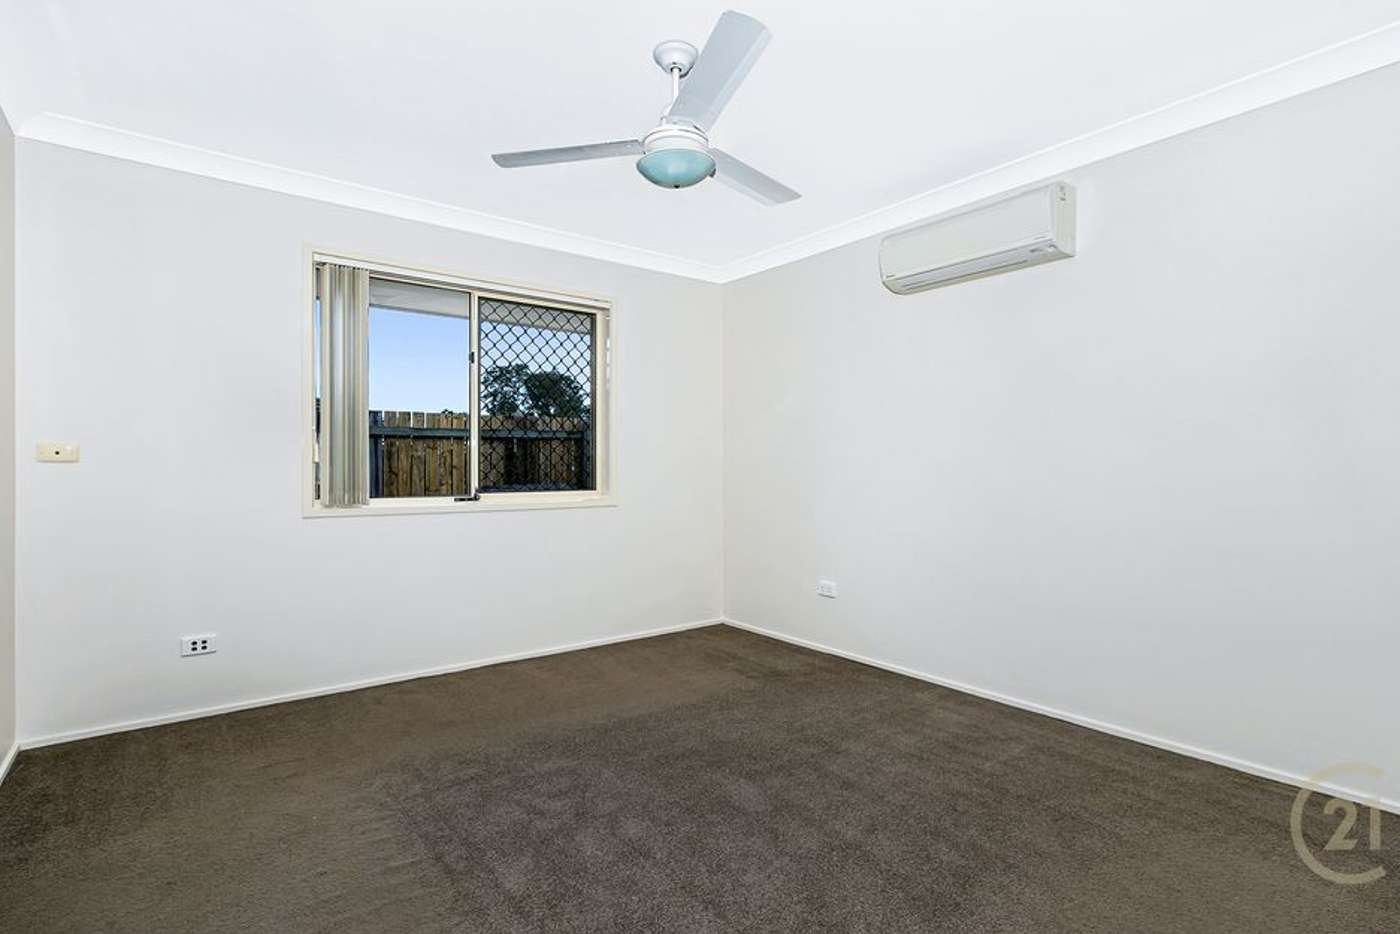 Sixth view of Homely house listing, 67 Kirralee Crescent, Upper Kedron QLD 4055